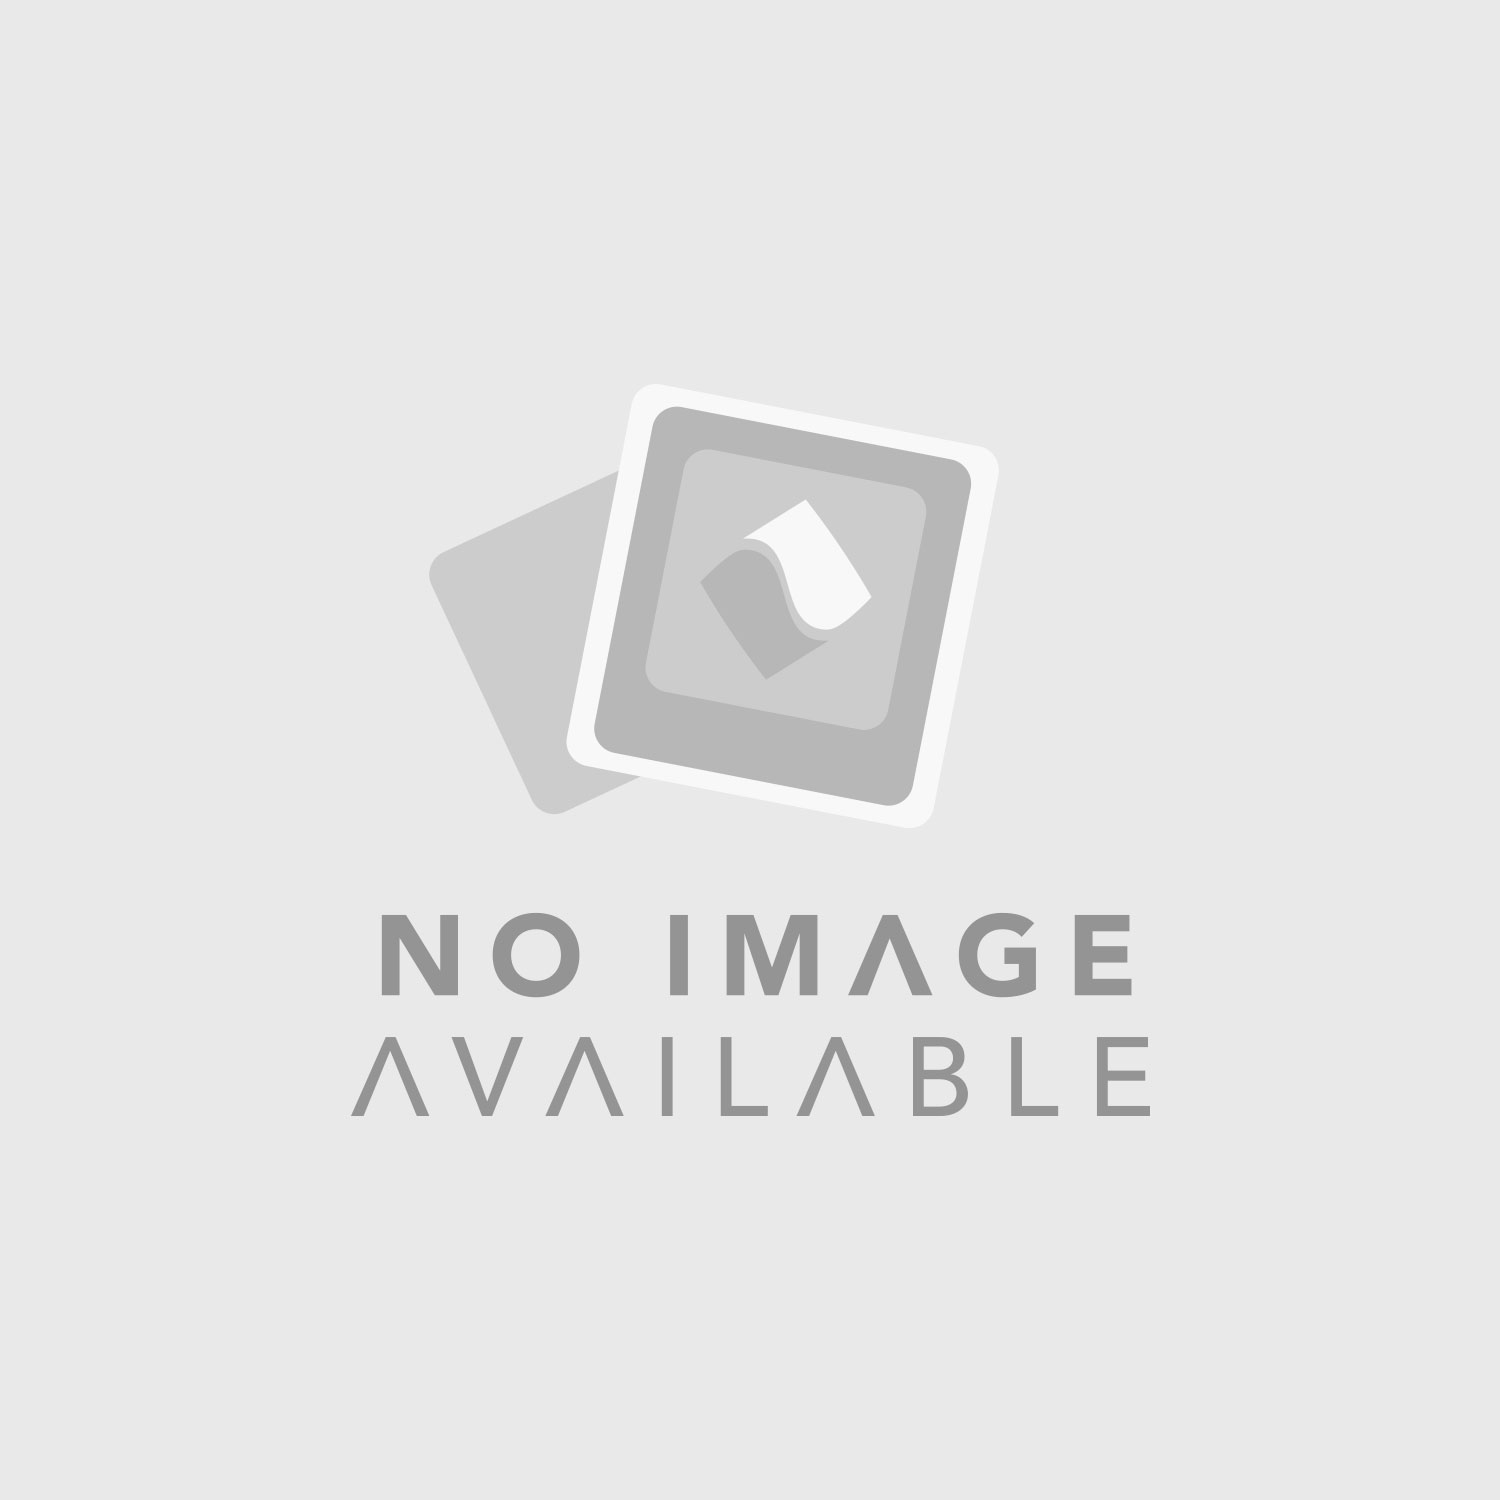 Williams Sound HED 026 Deluxe Mono Rear-Wear Headphones